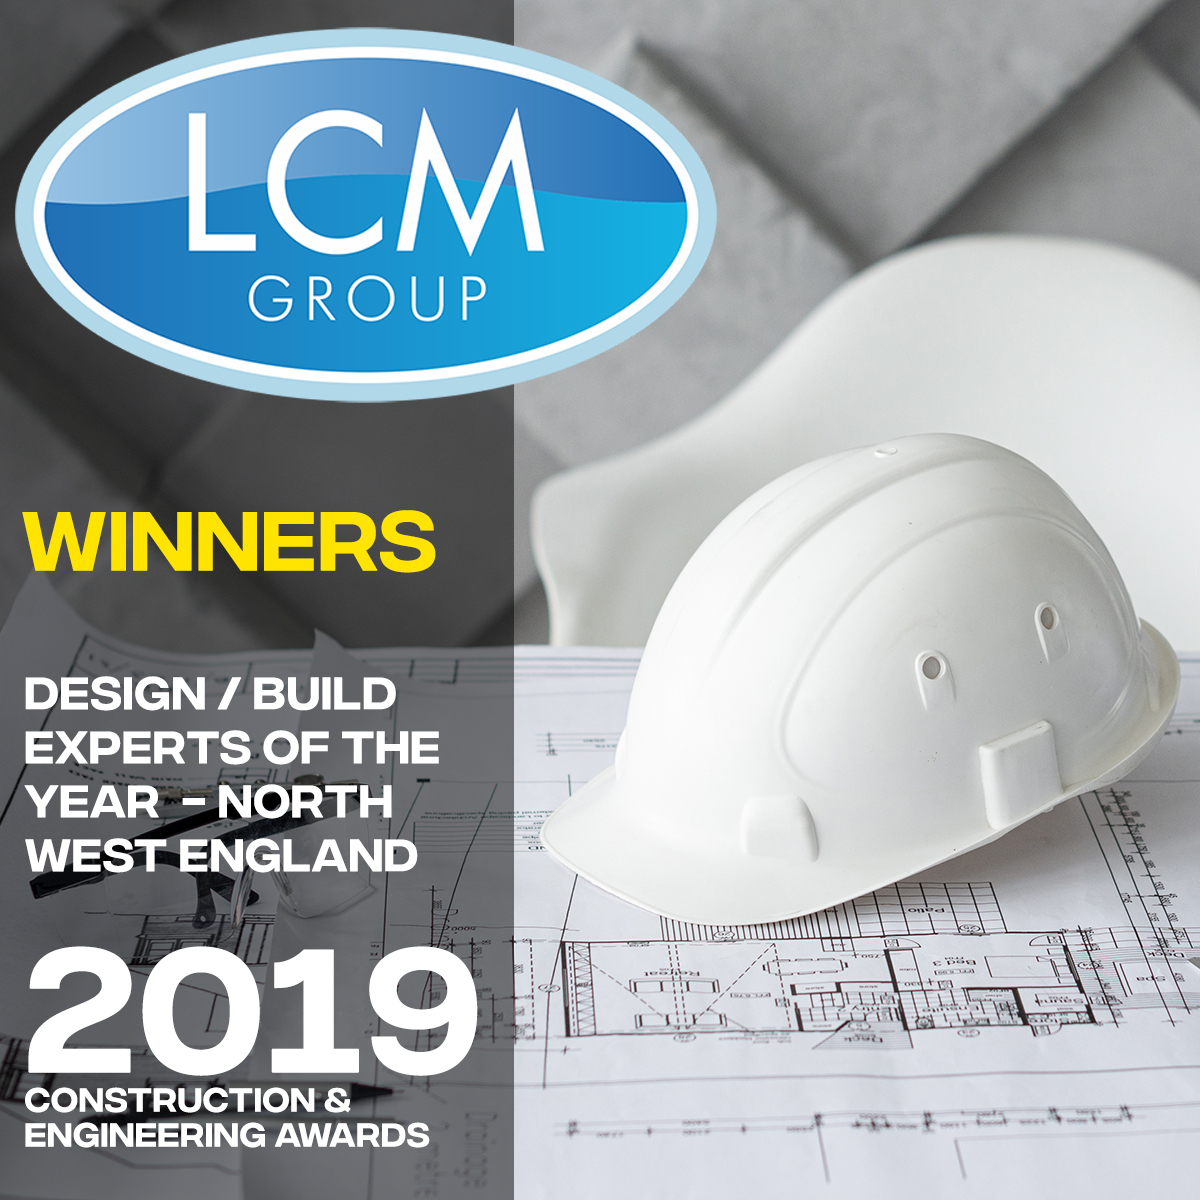 Construction & Engineering Award Winners 2019